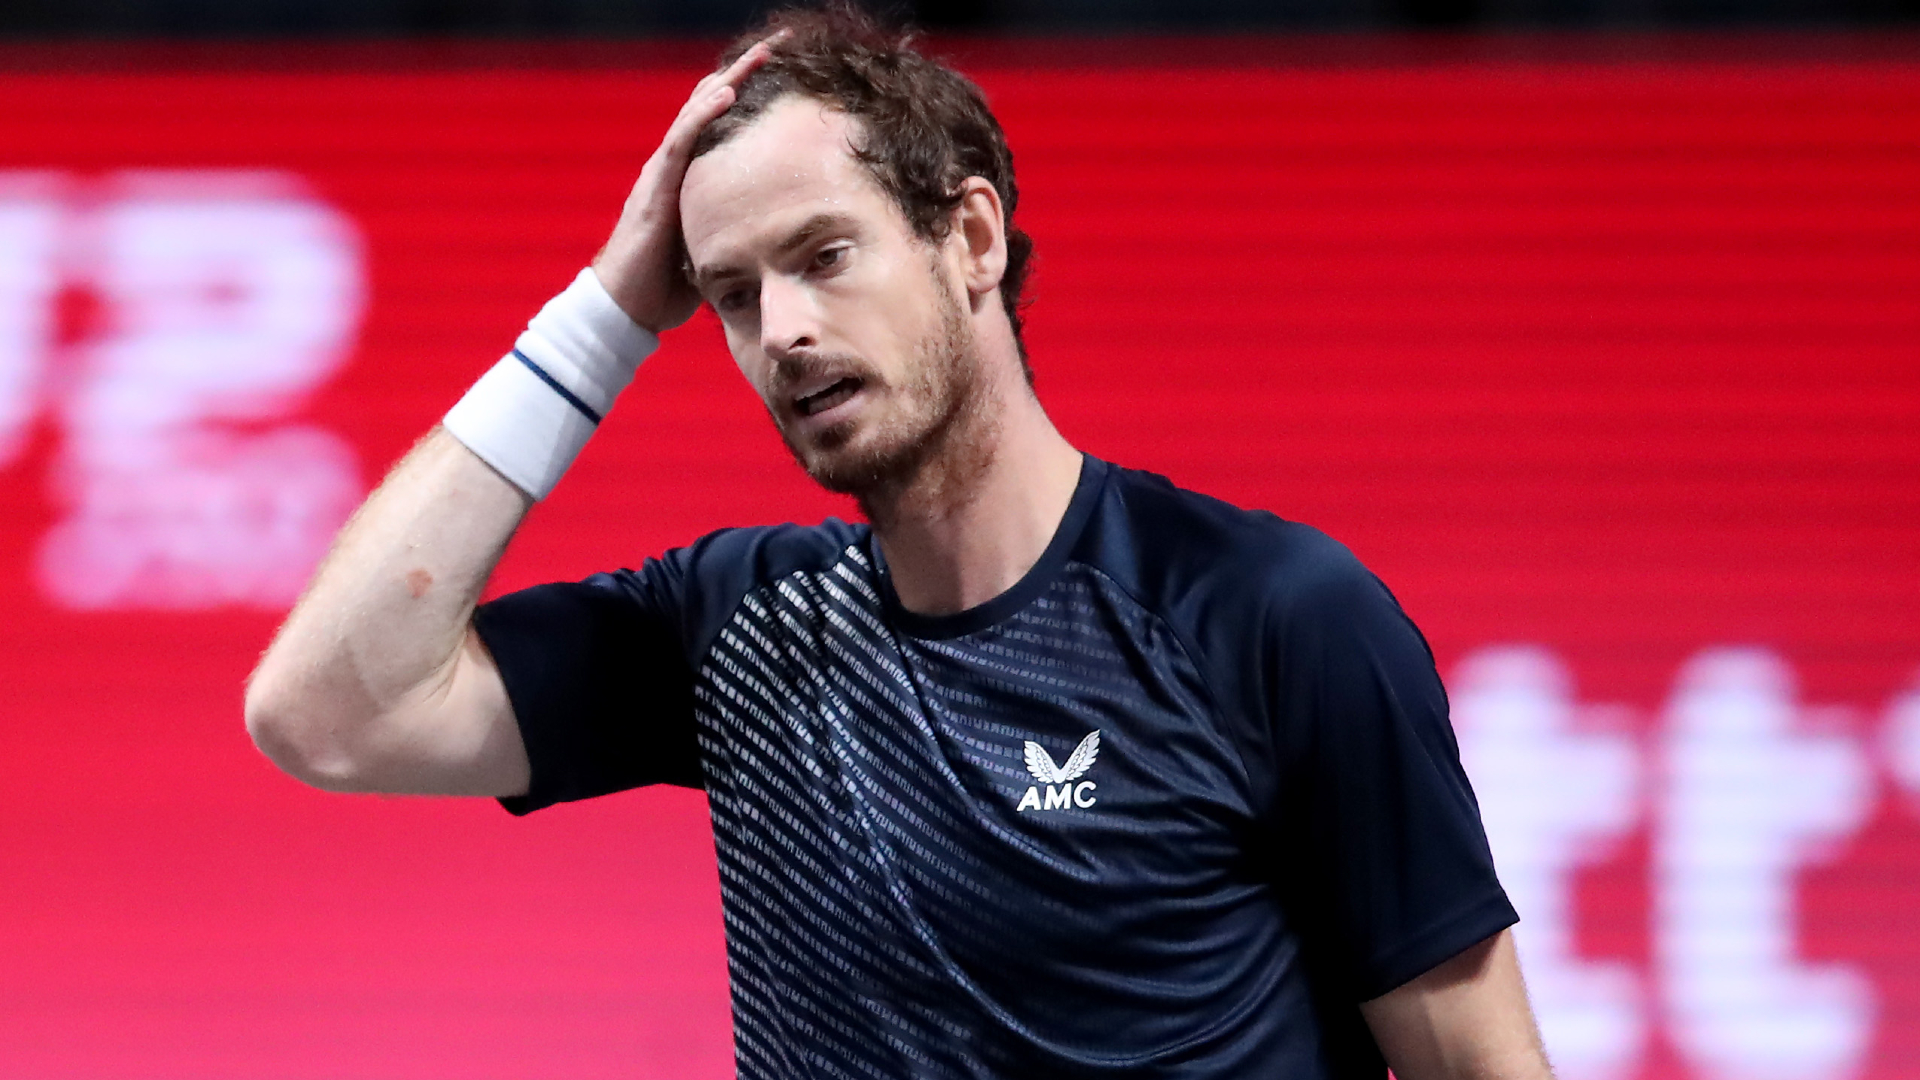 Andy Murray reveals Social Dilemma inspired him to delete social media apps, not retirement comments